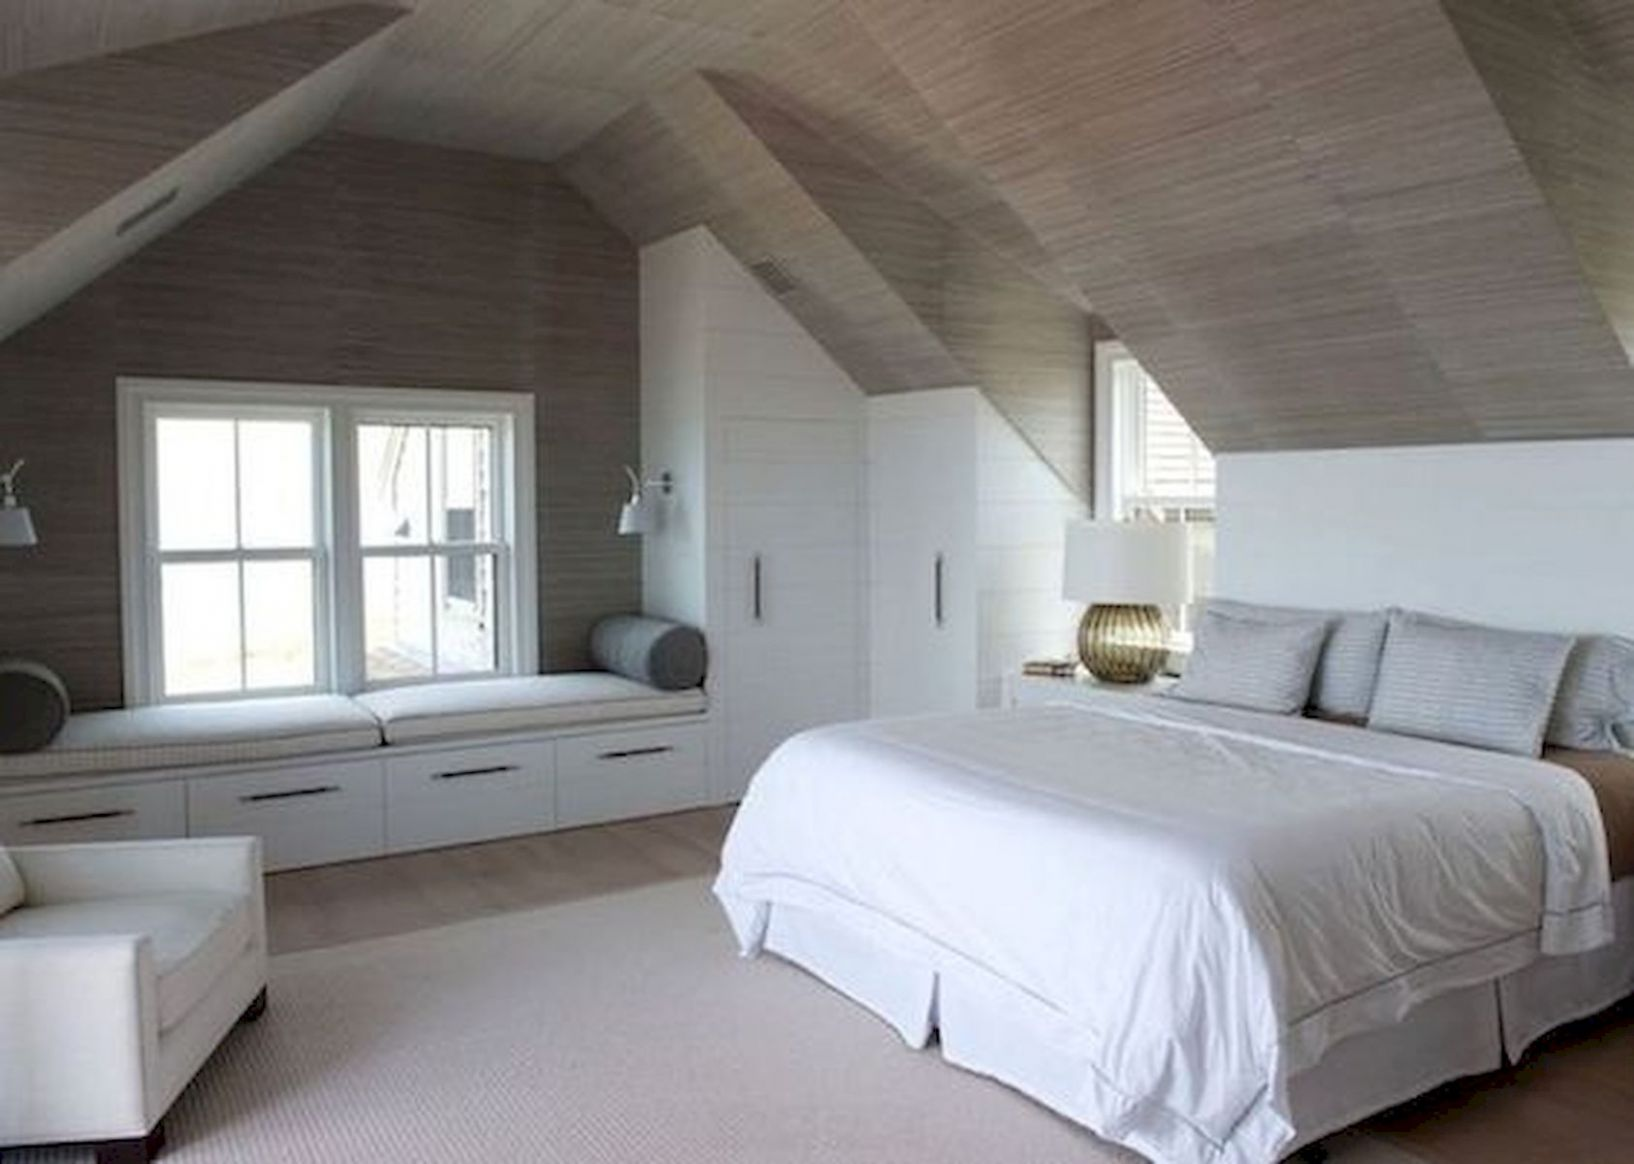 8 Awesome Attic Bedroom Design and Decorating Ideas - house8